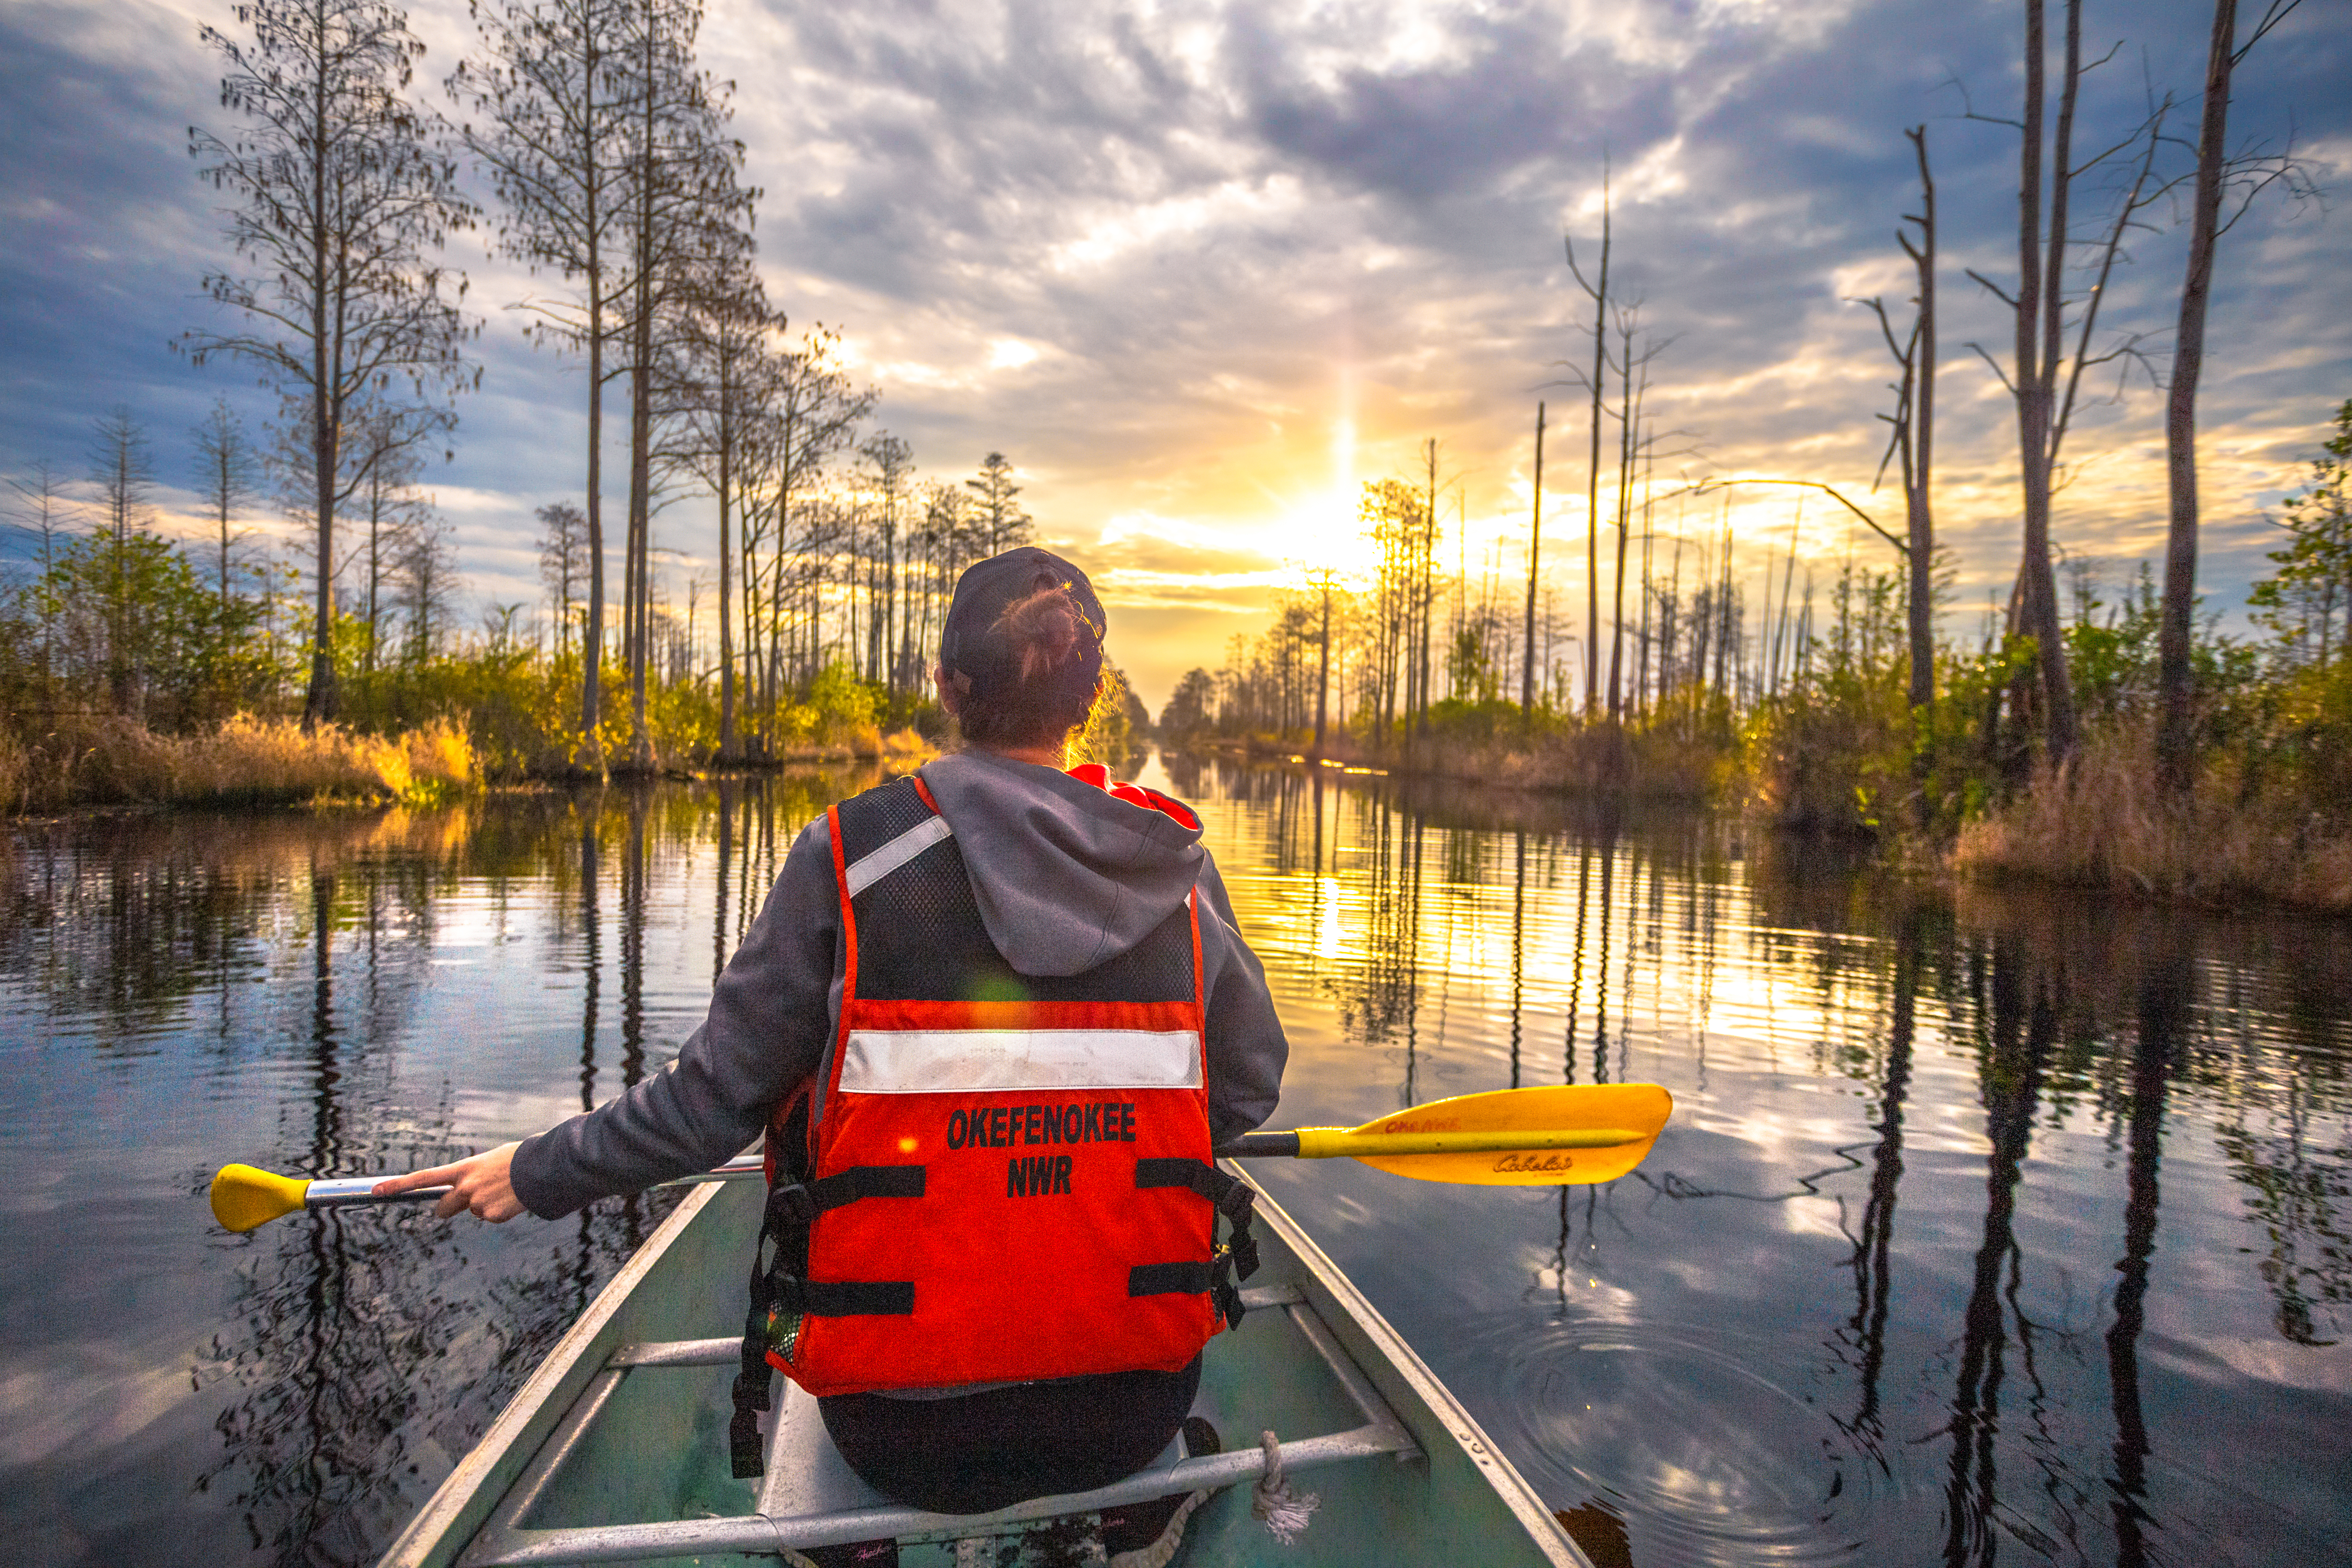 Paddler in a canoe Okefenokee Swamp Okefenokee Wilderness Area NWR